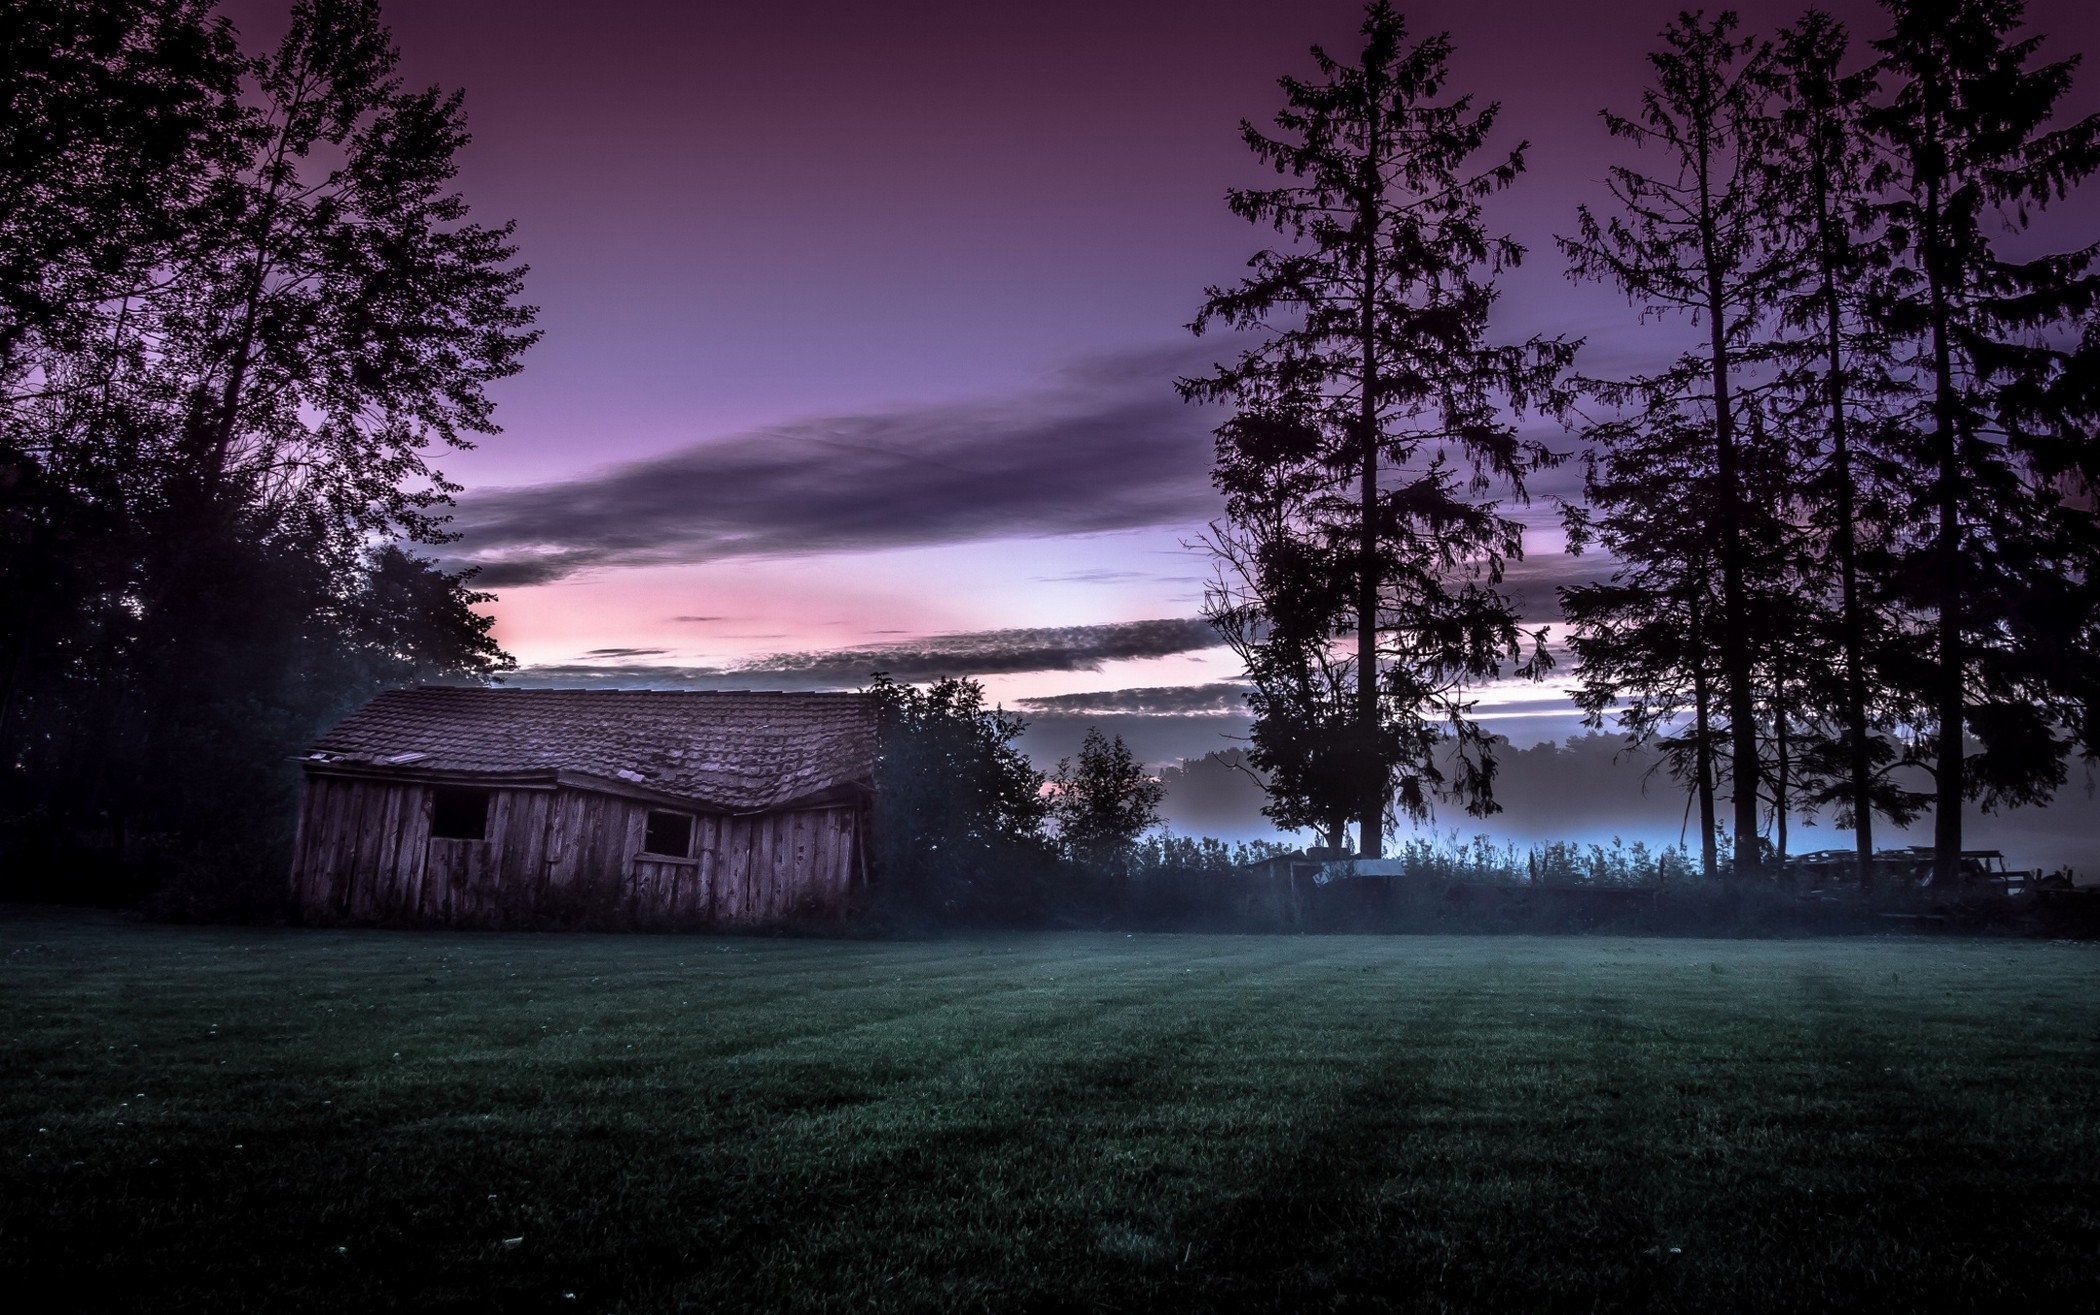 General 2100x1315 nature landscape hut trees mist grass old cottage sunset Norway clouds